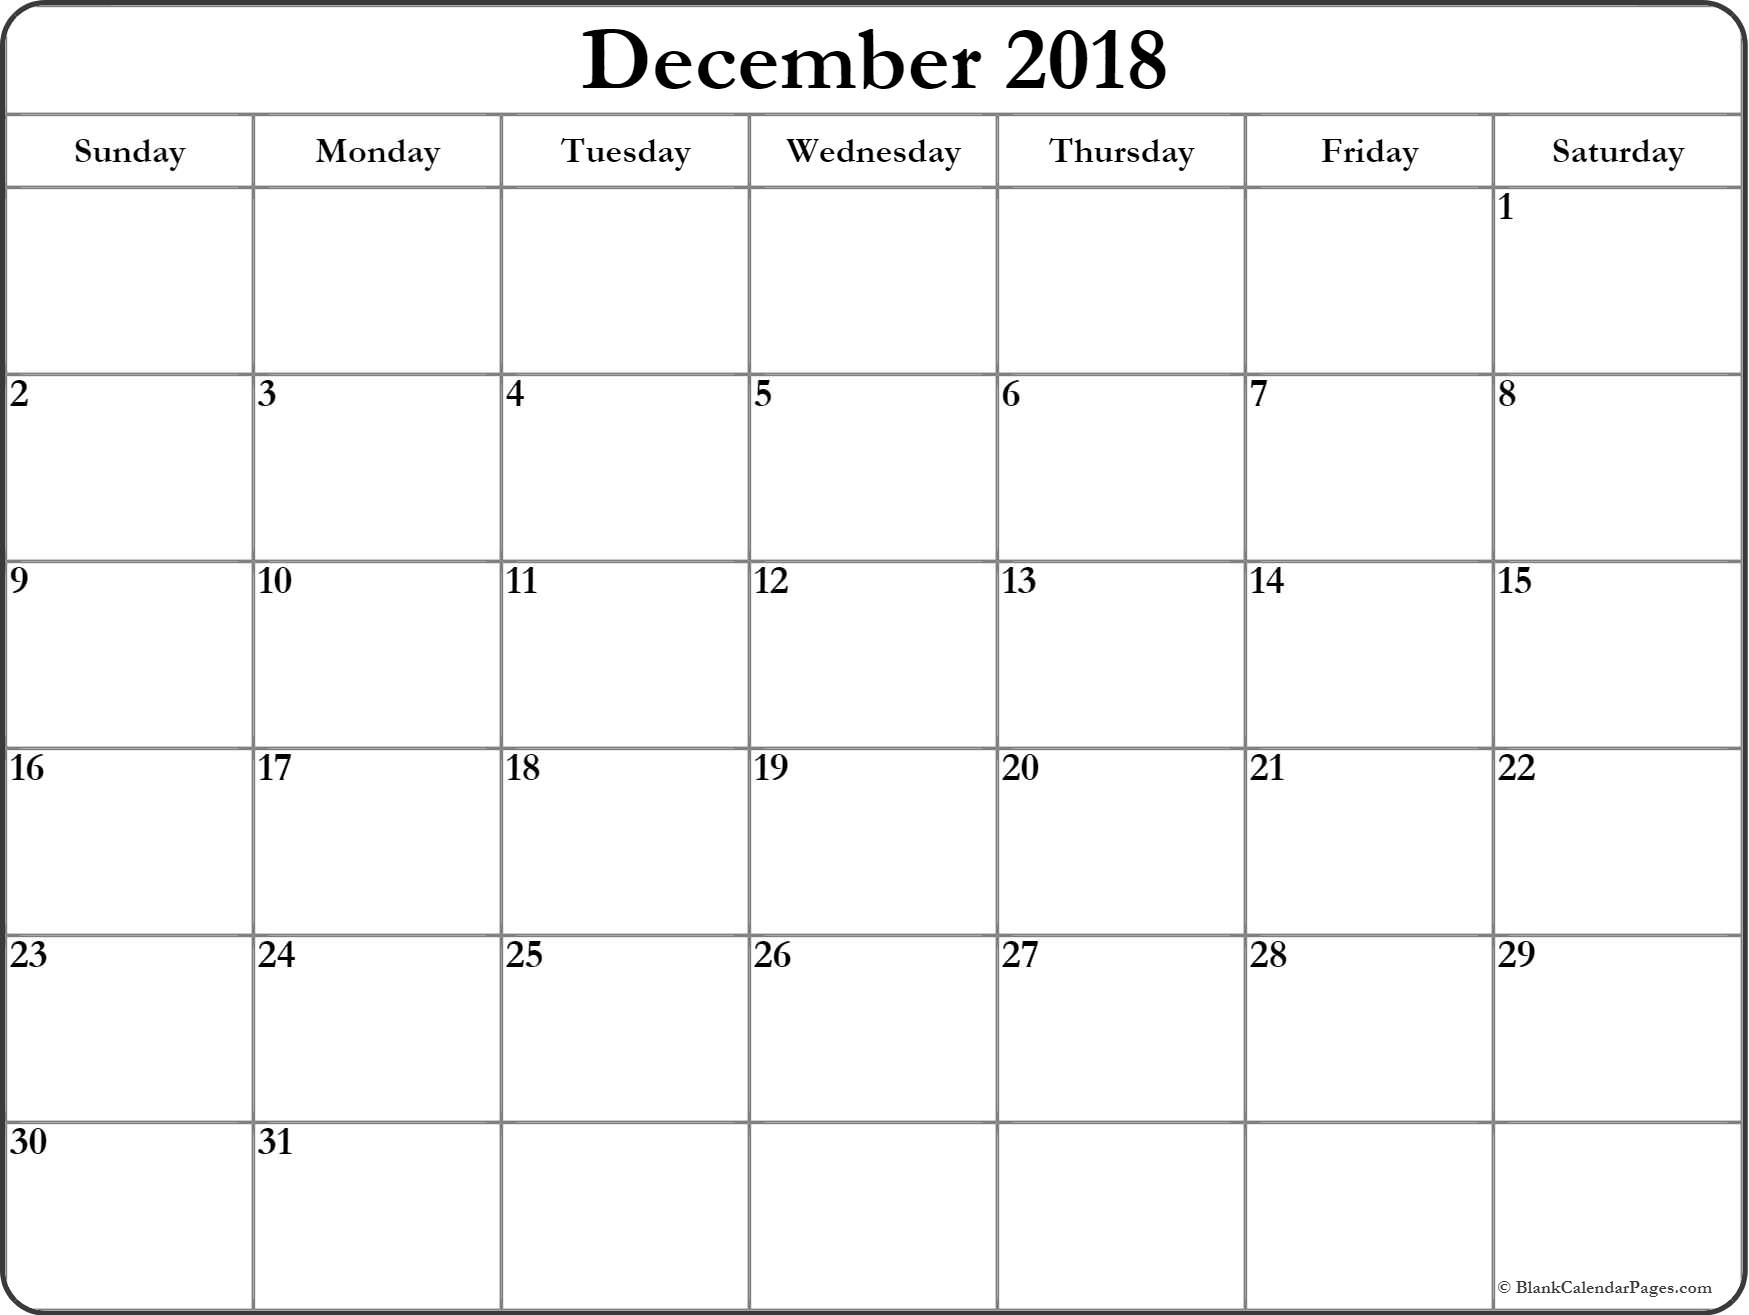 December 2018 Calendar | Free Printable Monthly Calendars inside Blank Monthly Calendar Dec